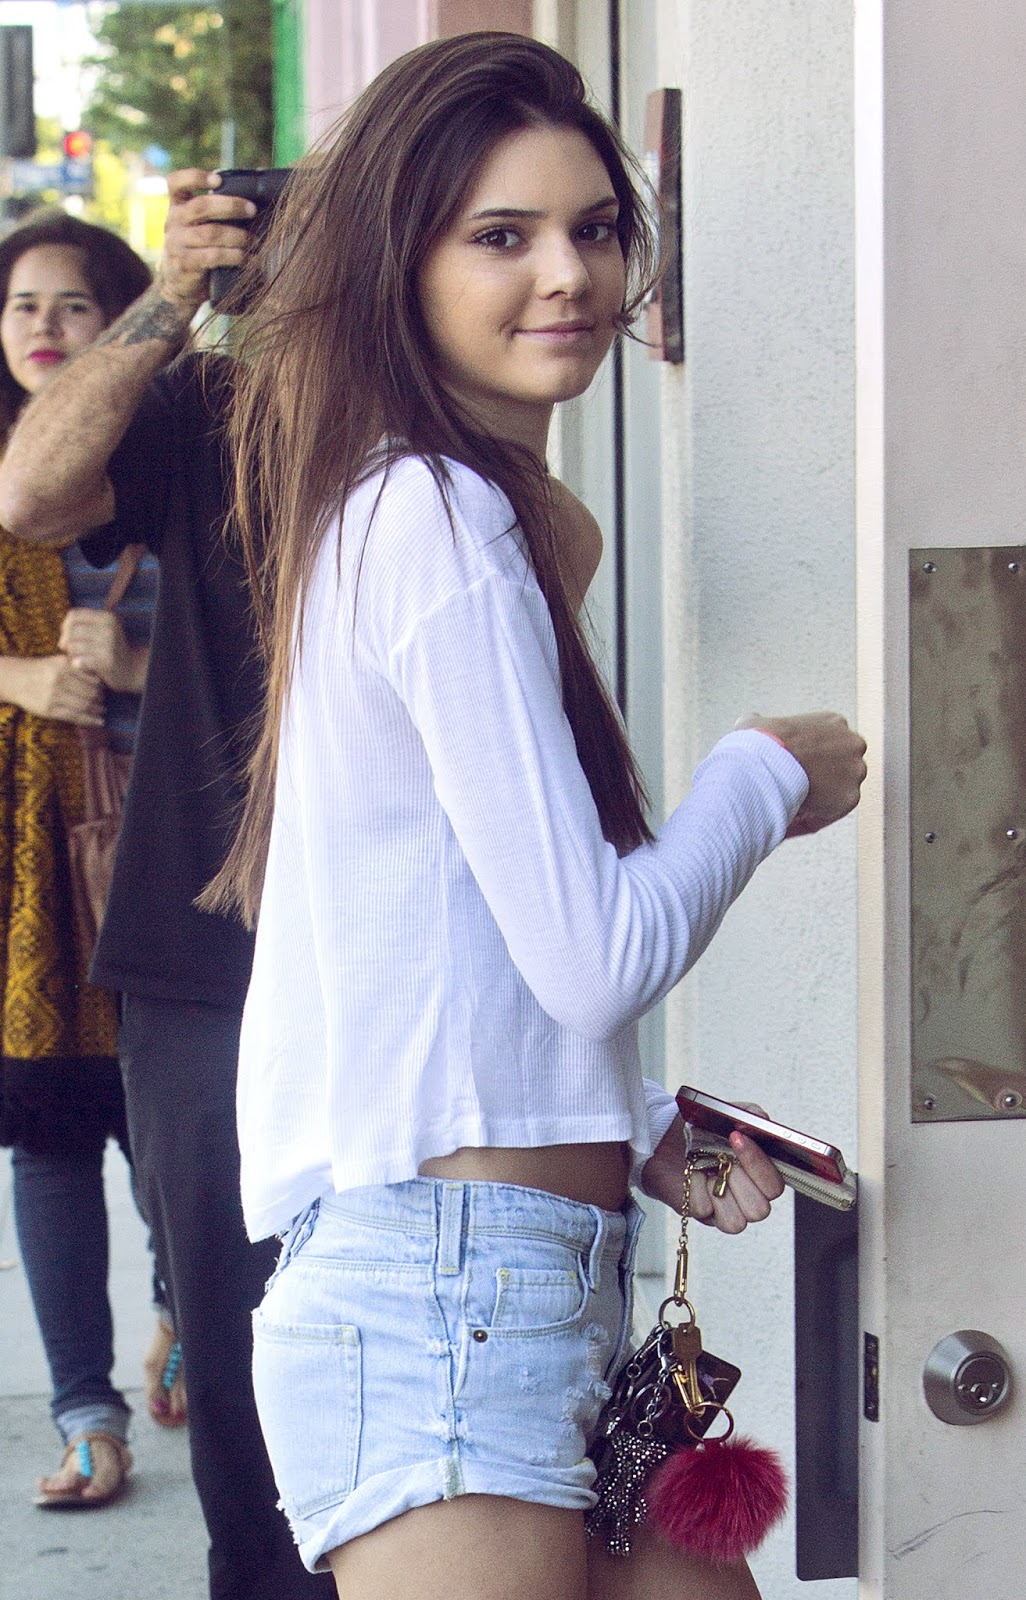 08 - Out and About with Kylie Jenner in Hollywood California on June 16, 2012